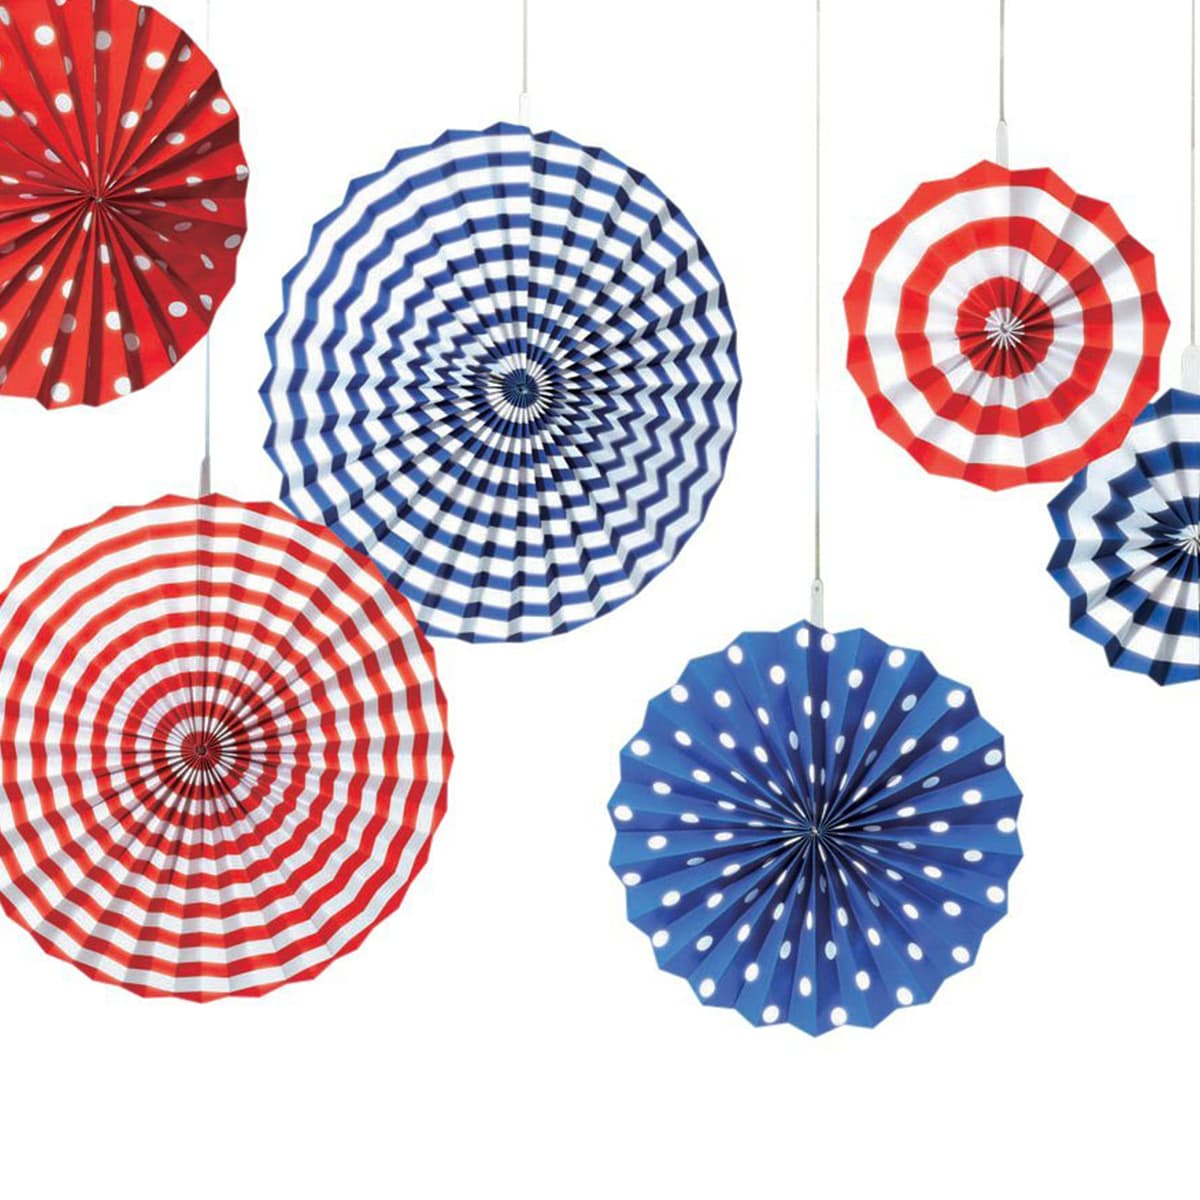 10 Festive 4th of July Decorations for $10 or Less: gallery image 8